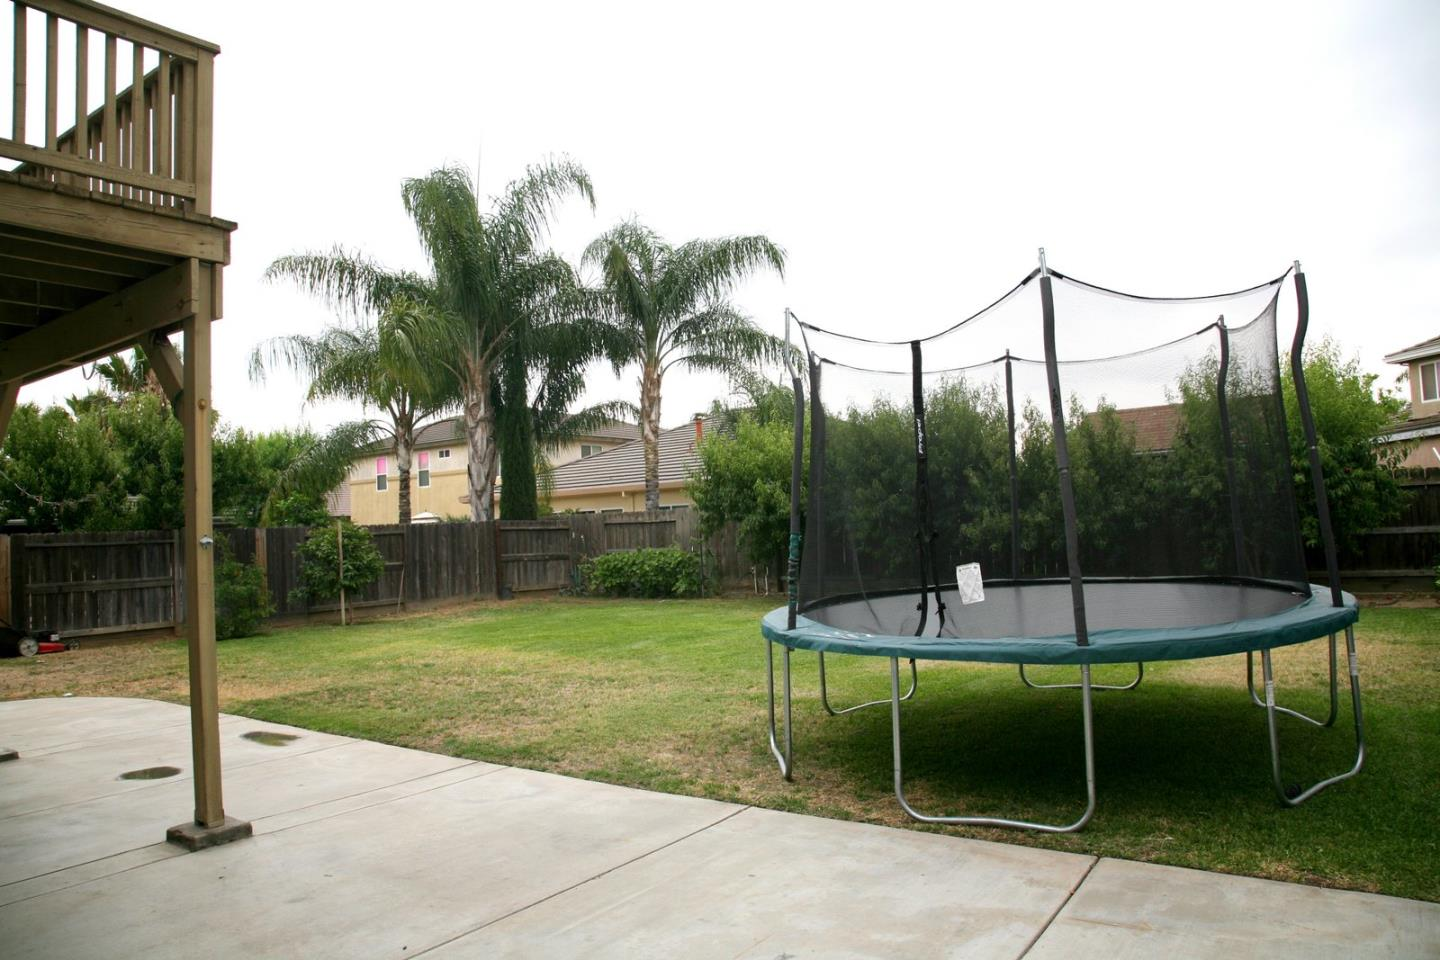 Additional photo for property listing at 3818 Podocarpus Drive  Ceres, カリフォルニア 95307 アメリカ合衆国